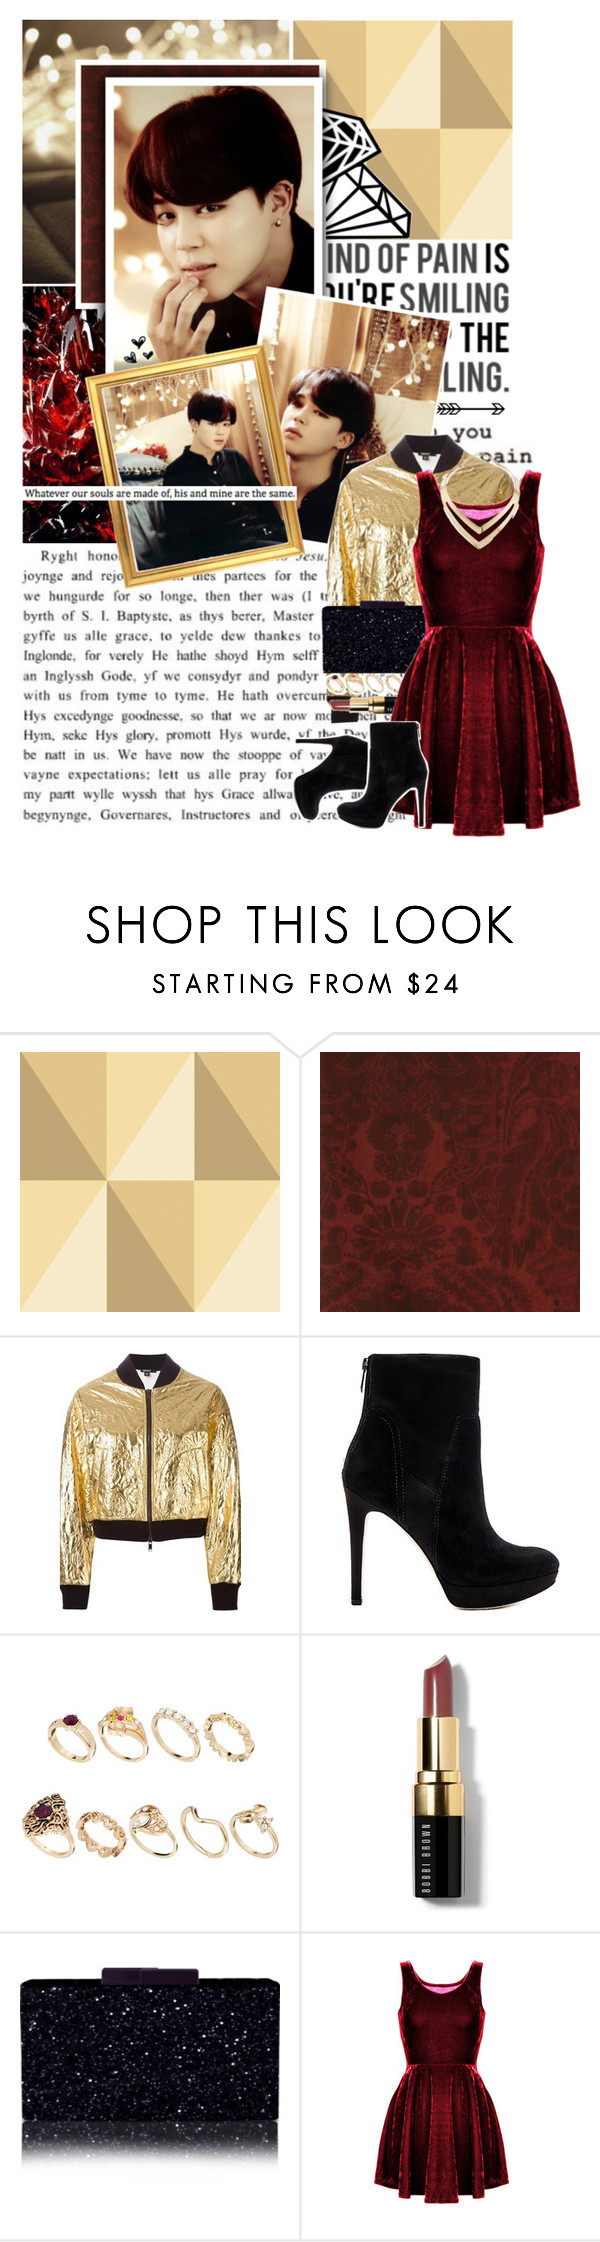 """""""Gold and Red...perfect combination"""" by glitterlovergurl ❤ liked on Polyvore featuring Love Quotes Scarves, Cole & Son, Andrew Martin, DKNY, Sam Edelman, ASOS and Bobbi Brown Cosmetics"""